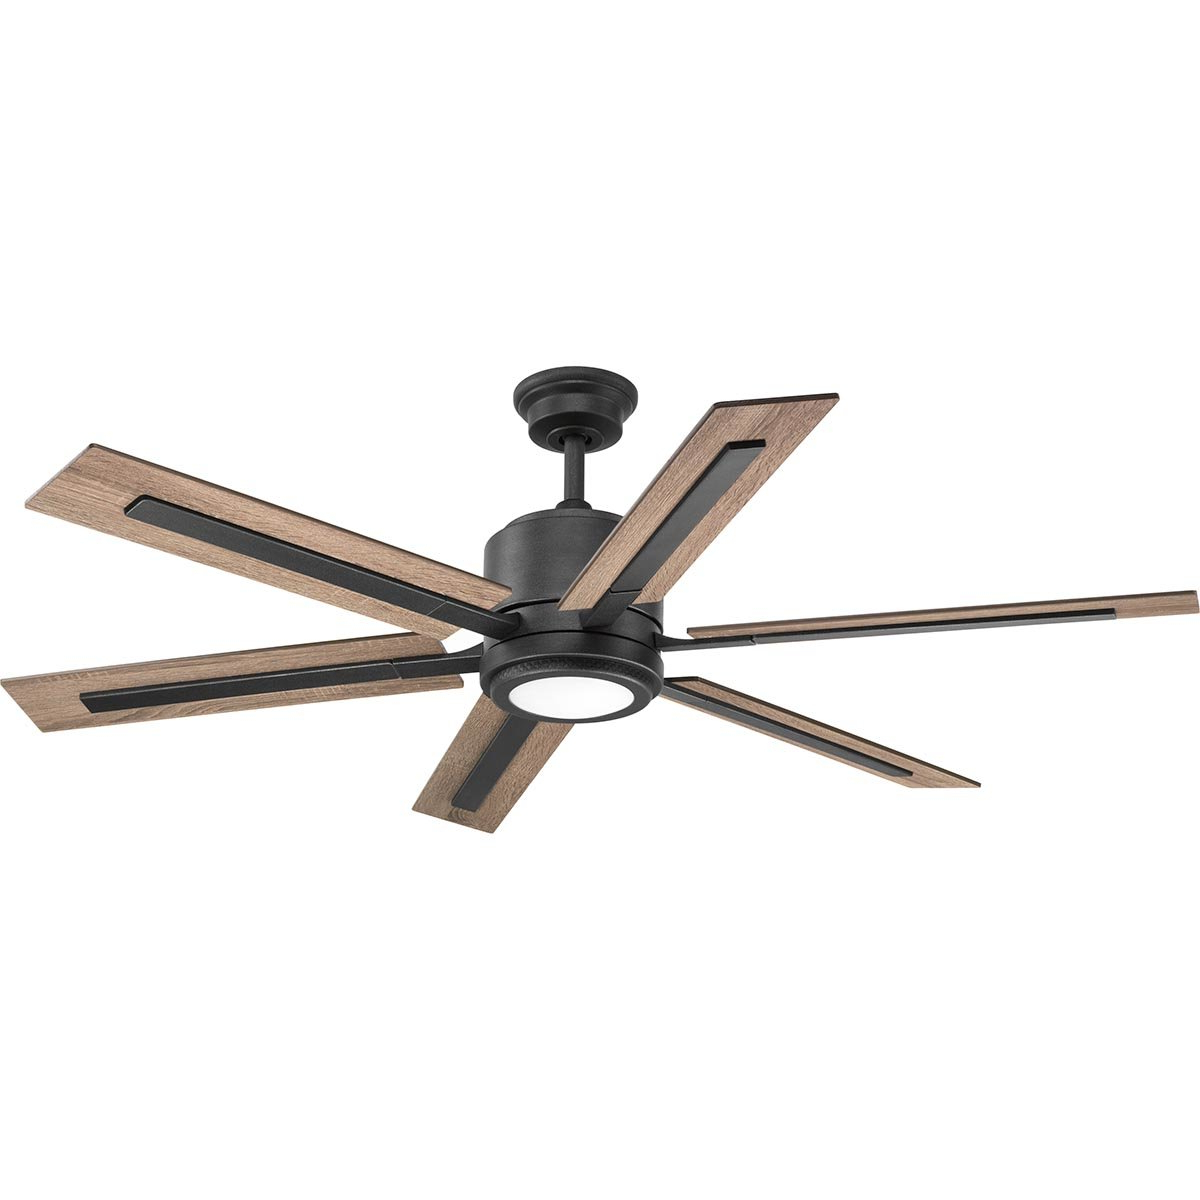 Valerian 5 Blade Ceiling Fans Throughout Preferred 6 Or More Blade Ceiling Fans (View 9 of 20)